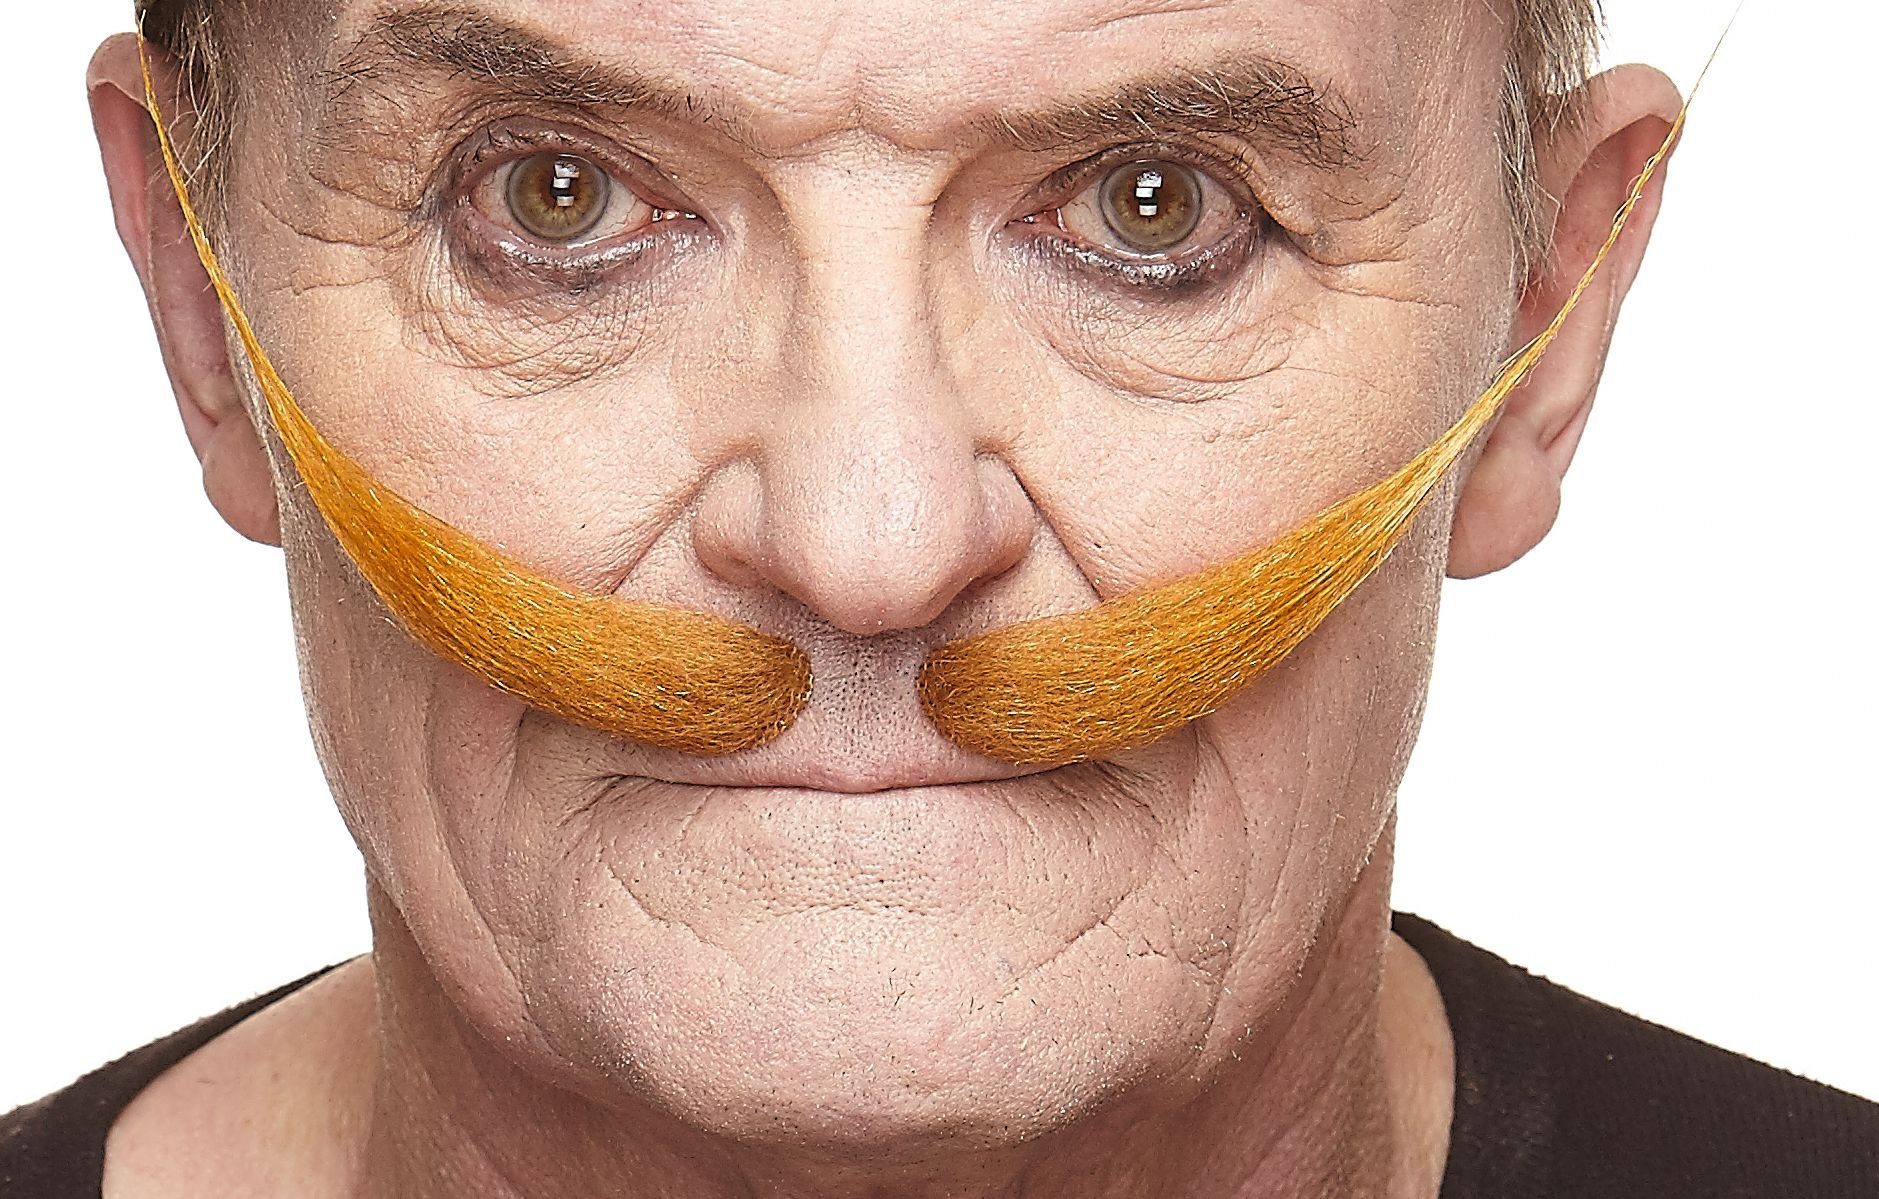 Mustaches Self Adhesive, Novelty, Fake Dali, Ginger Color